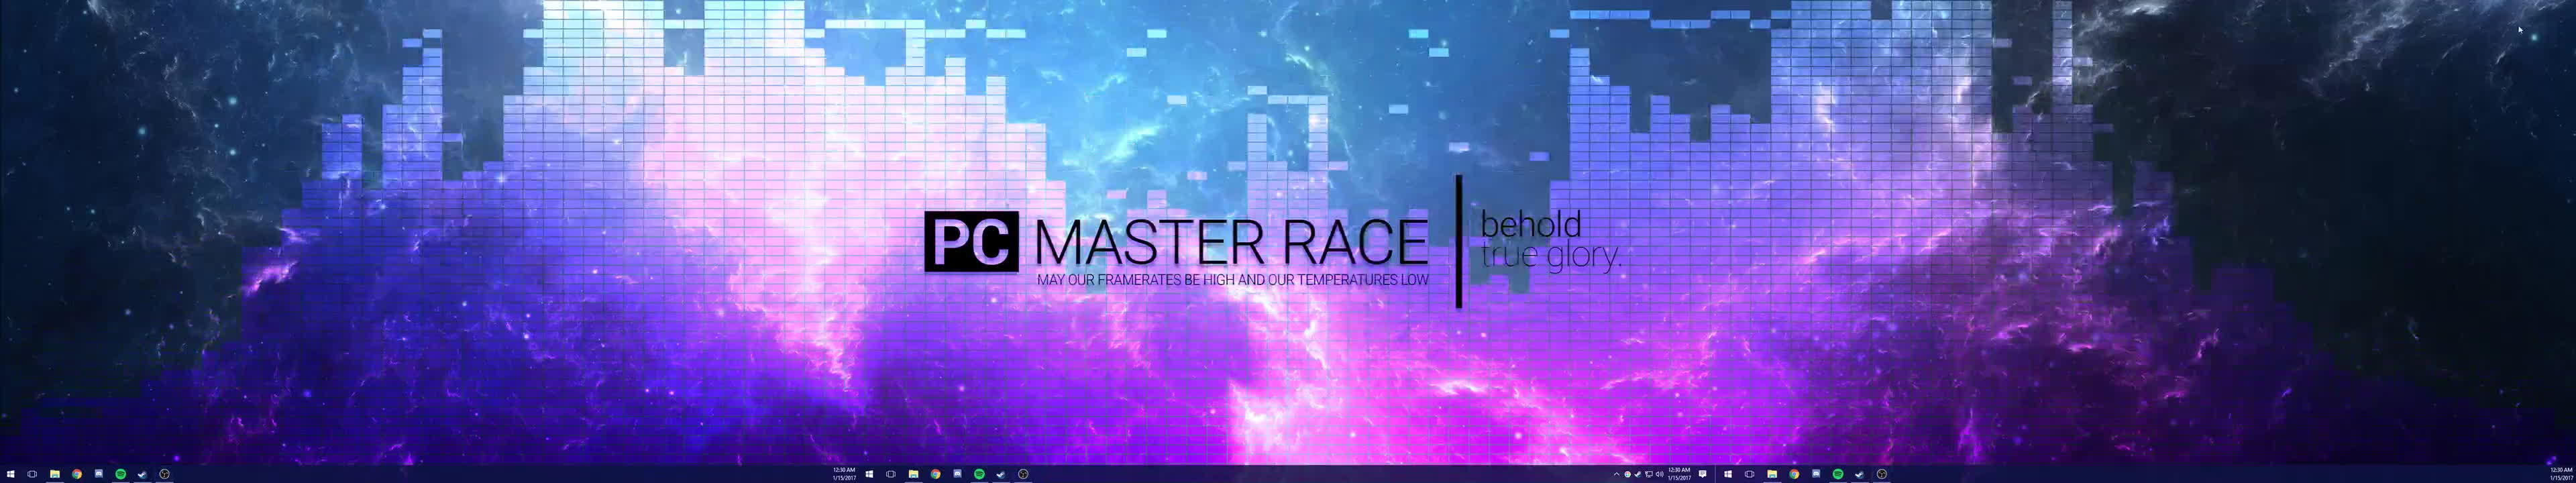 pcmasterrace, wallpaper engine, Triple Monitors with Wallpaper Engine GIFs